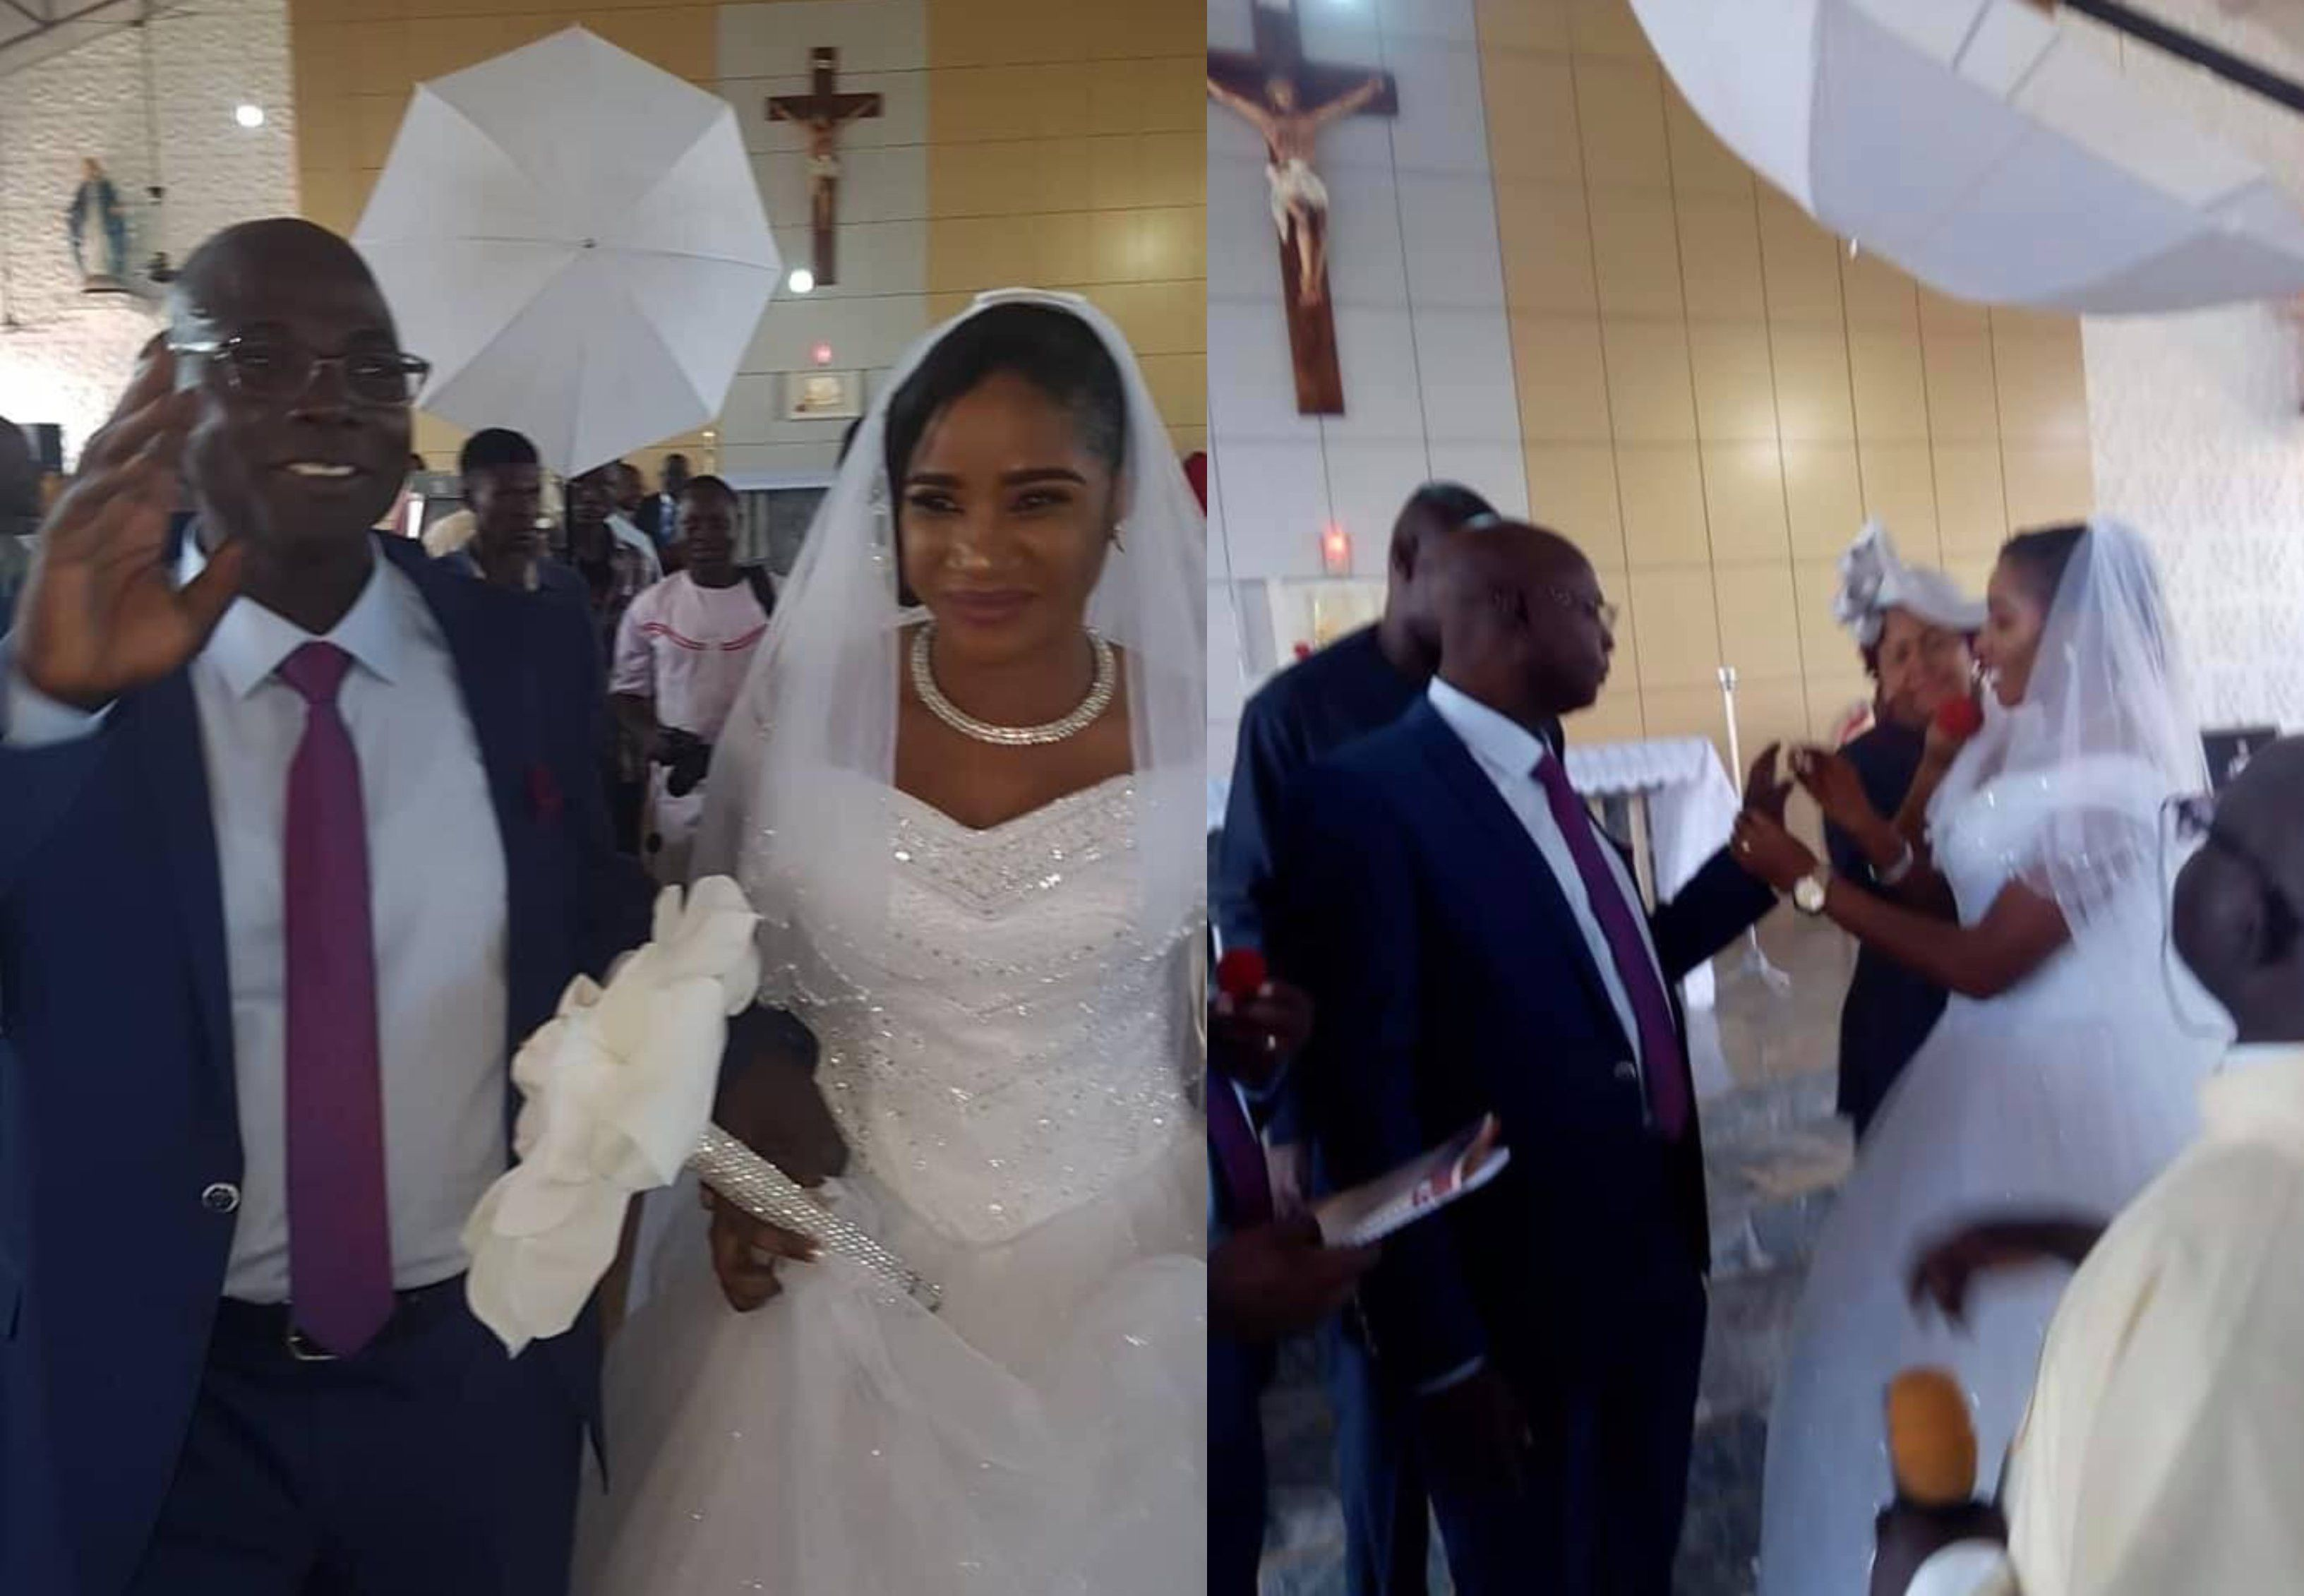 Wedding ceremony of former Catholic Priest of 25 years in